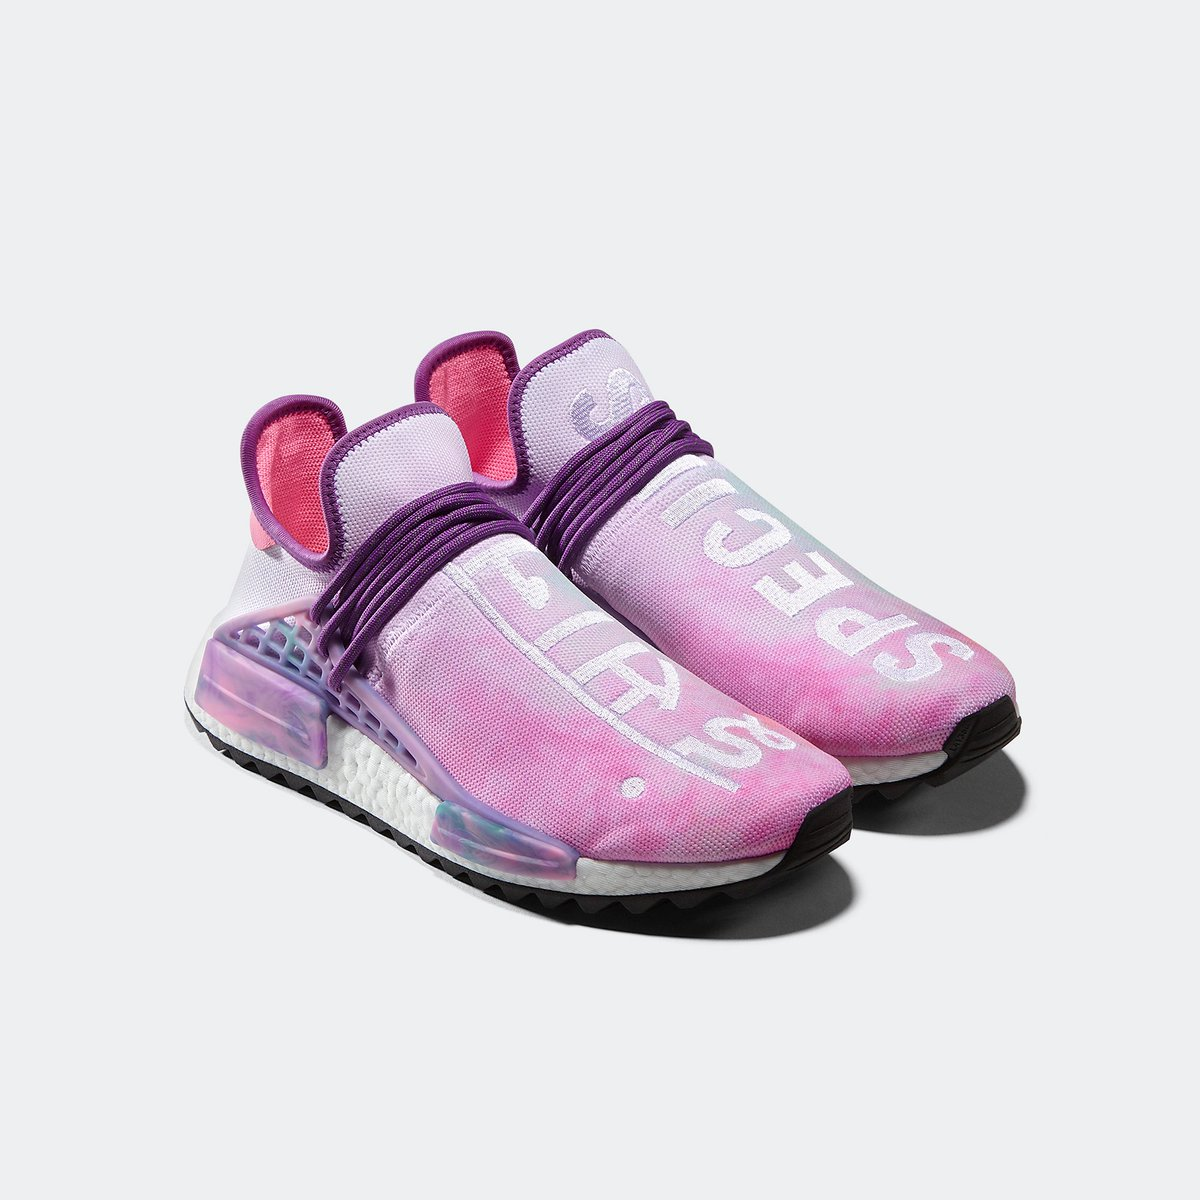 The Pharrell x adidas Hu Holi NMD  Powder Dye  Pack will be released next  week. Which colorway are you going for  http   bit.ly 2FptnFH  pic.twitter.com  ... d198b02c2